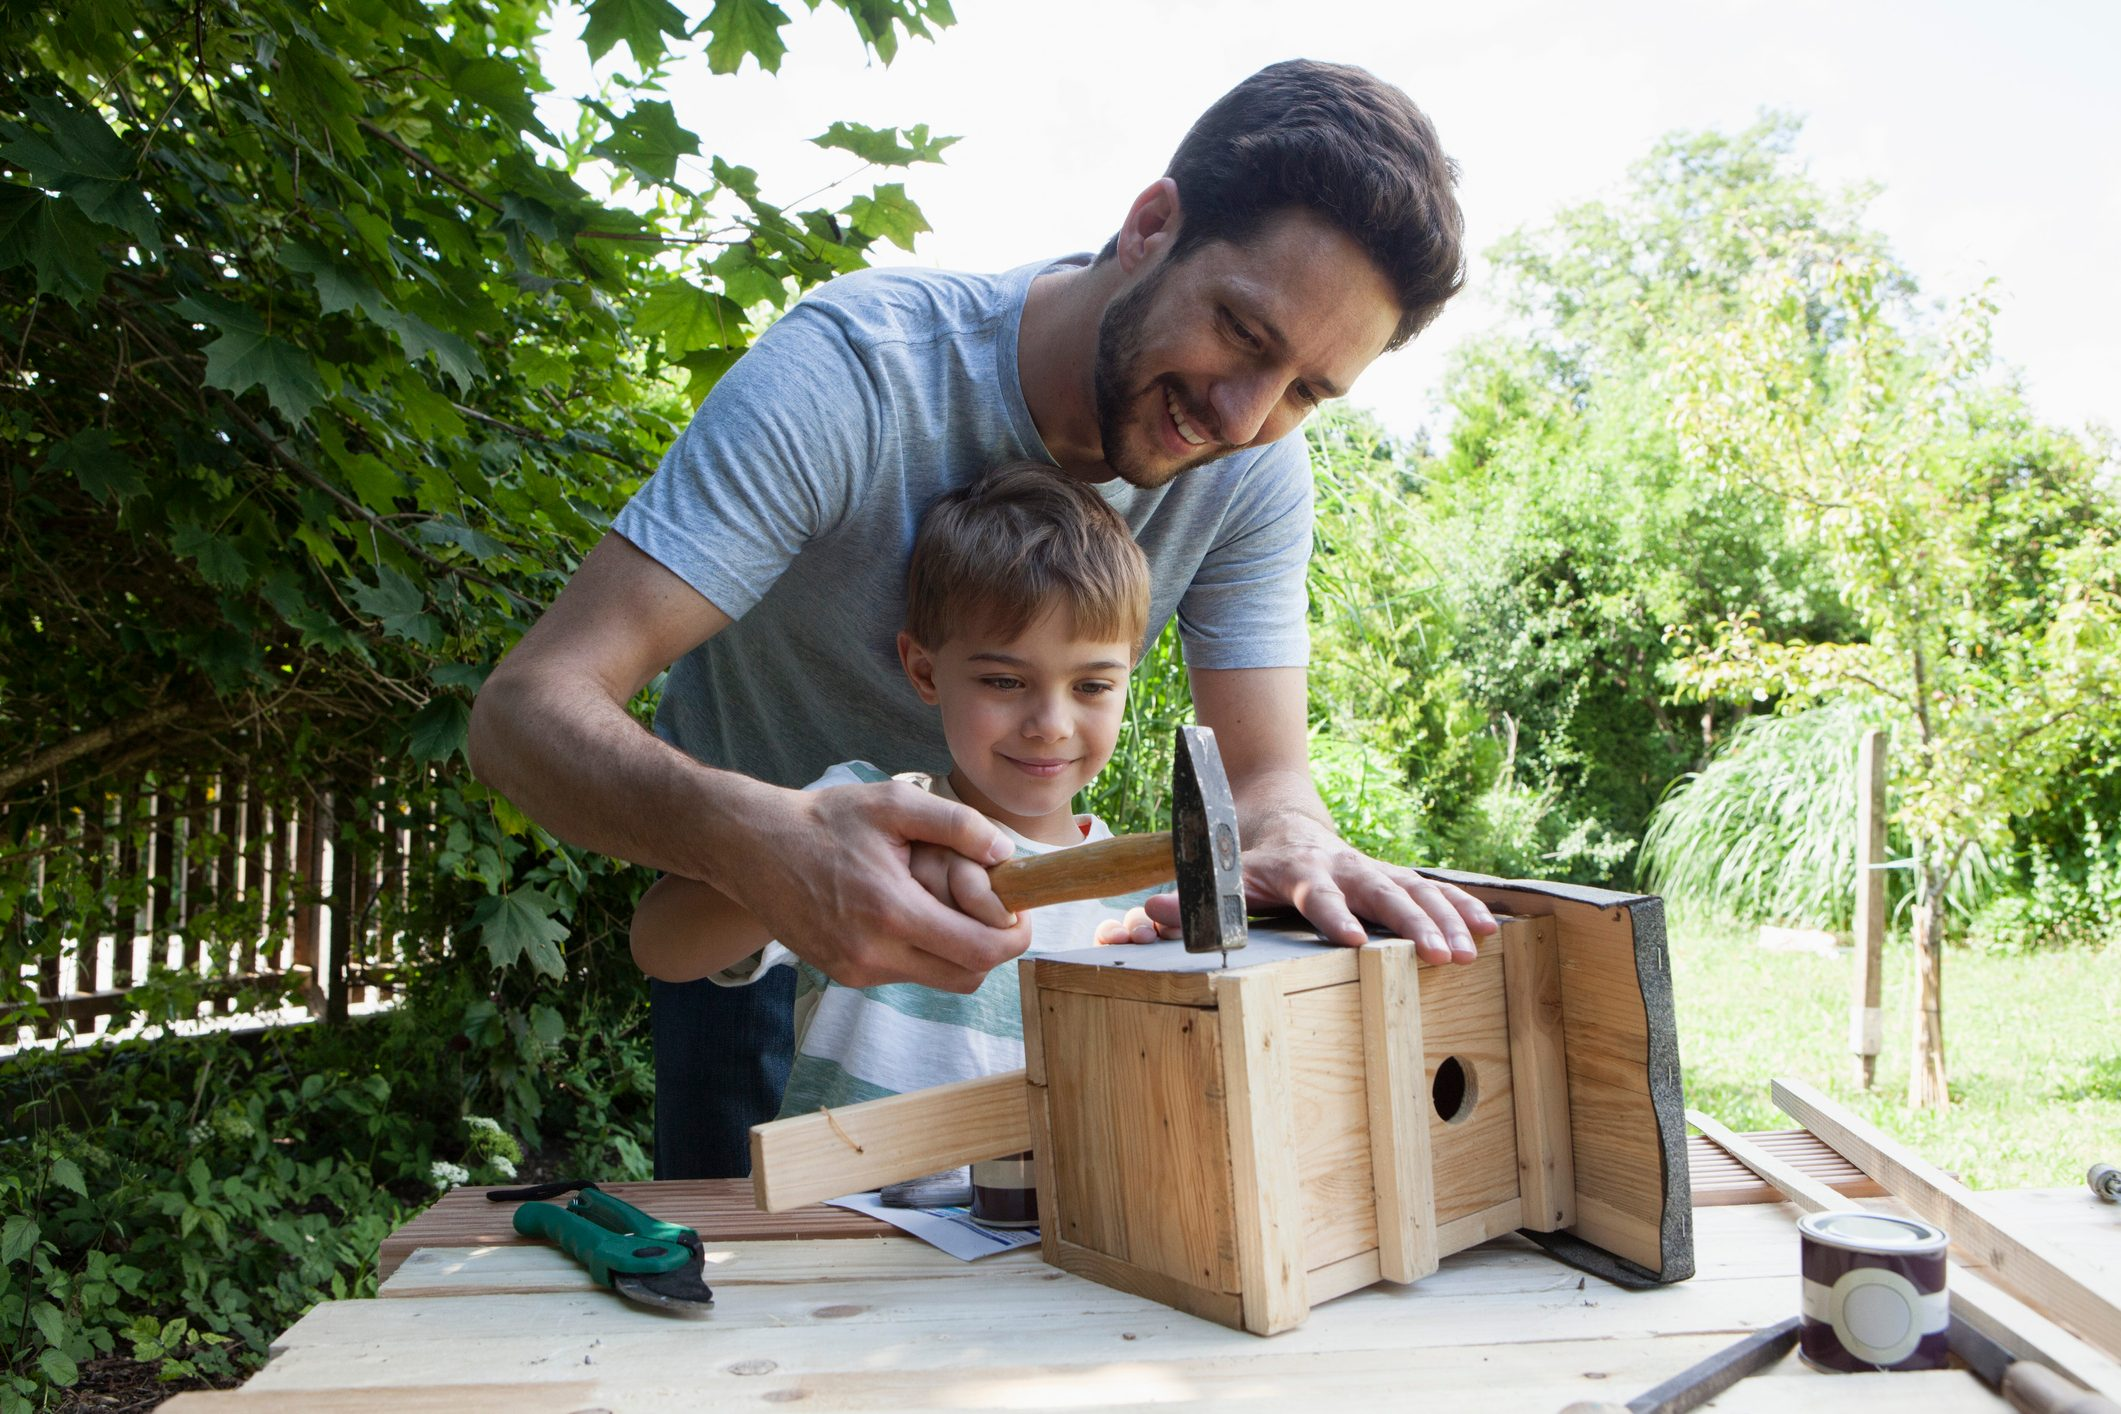 father and son building a birdhouse together